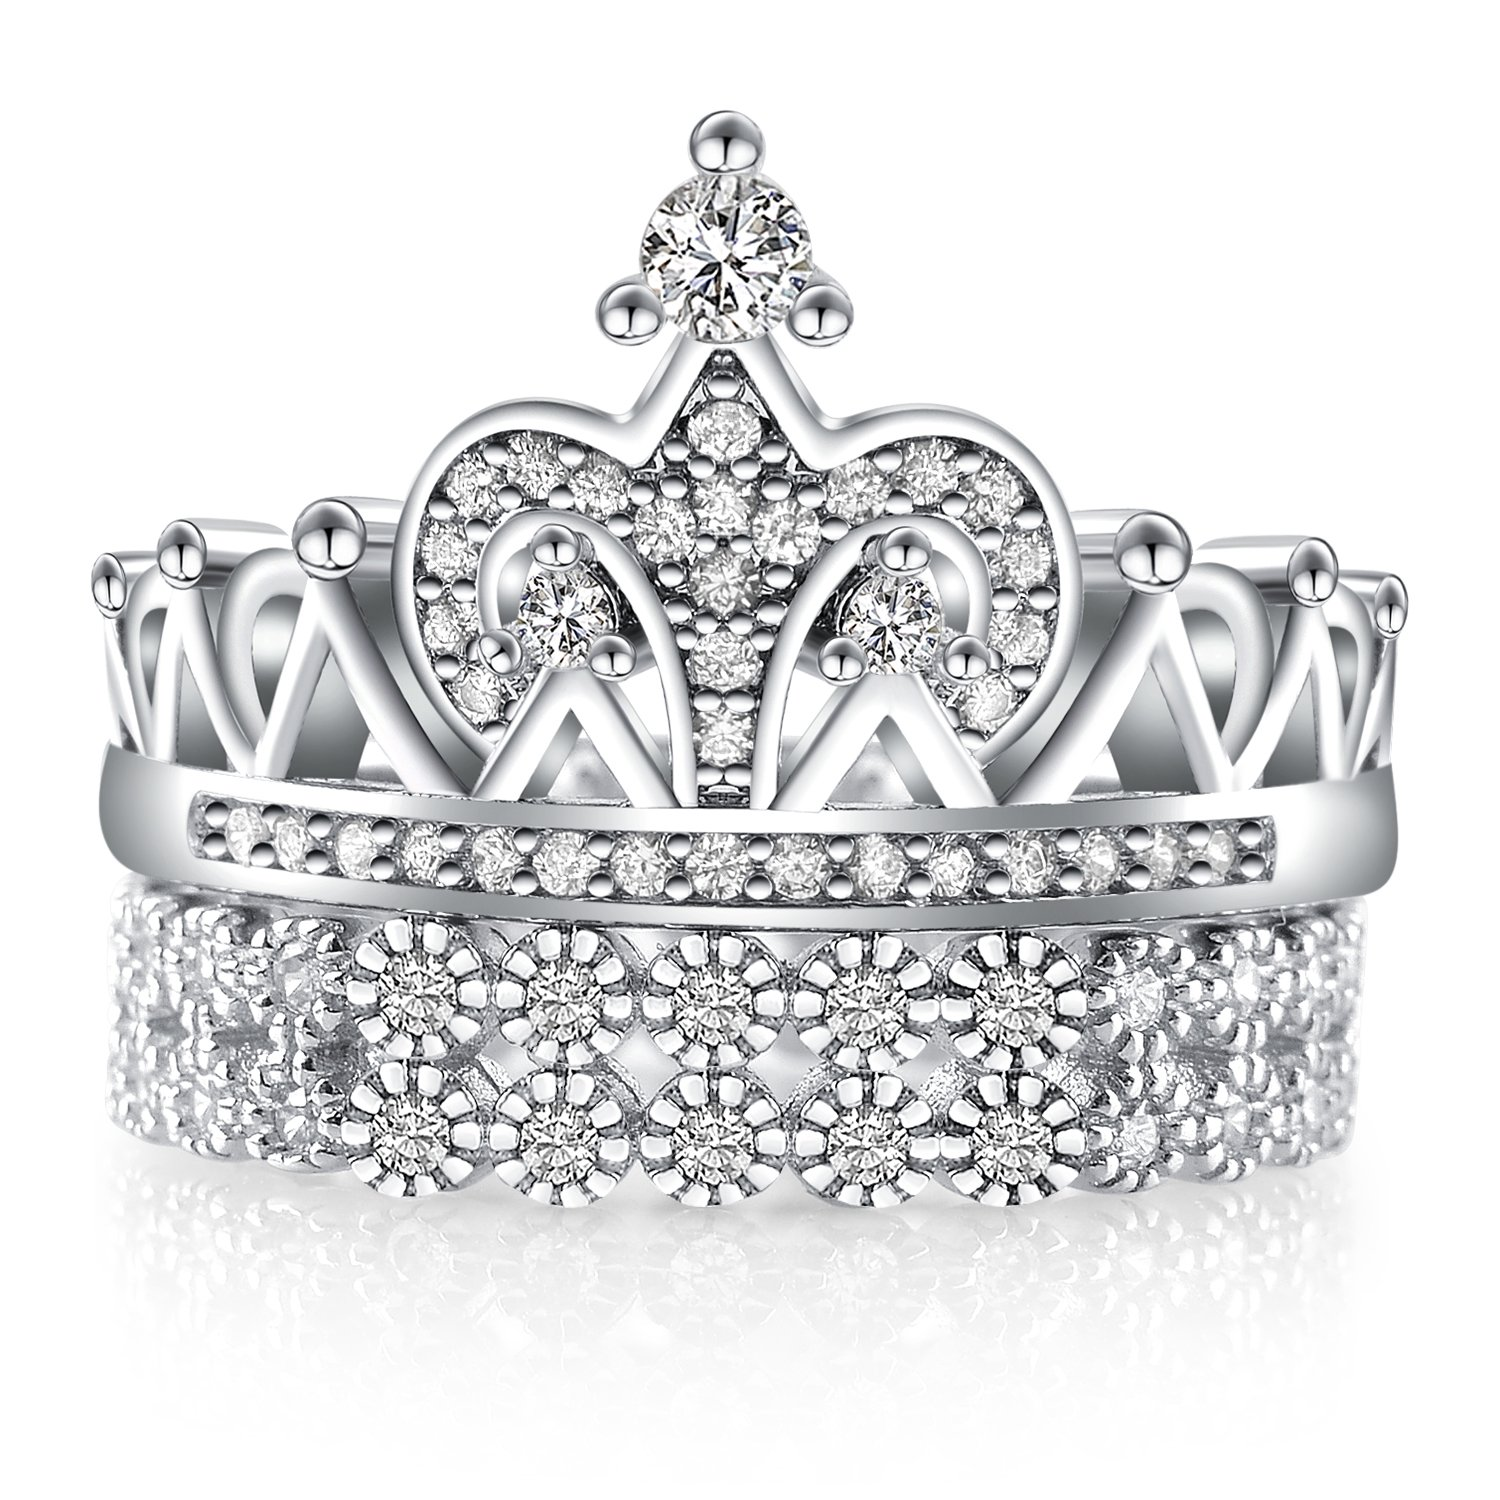 Platinum-Plated Sterling Silver Exquisite Crown Princess Band Noble Queen Wedding Rings Gifts 2PCS/Set